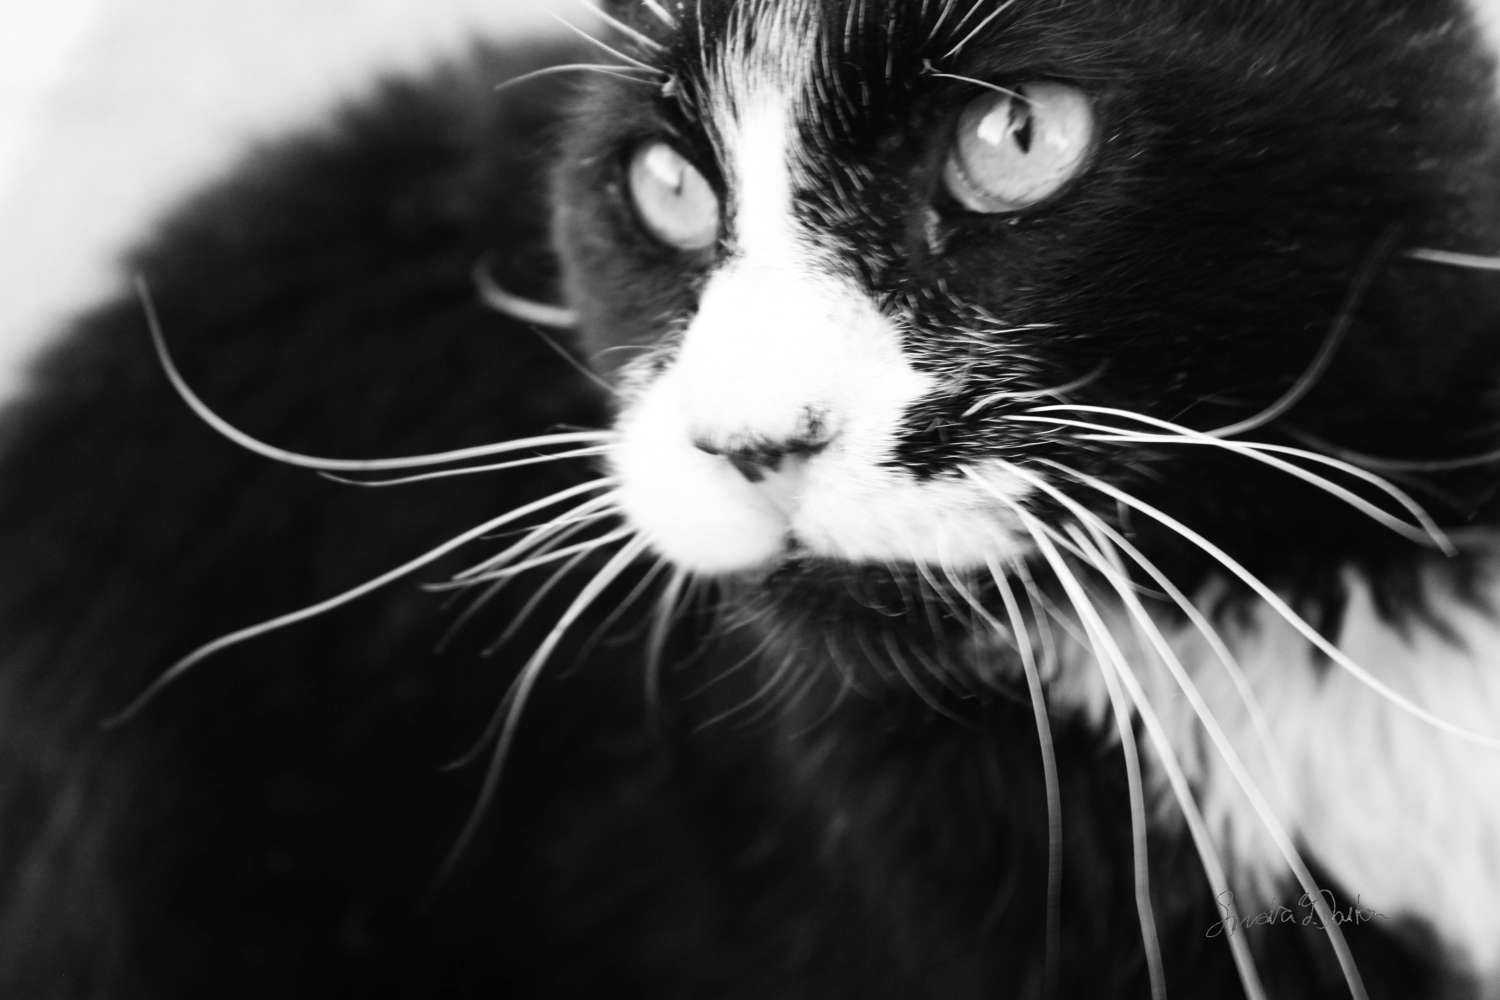 Feral Cat Photography Black And White Photo Veterinary Art Wall - This photographer is celebrating stray cats through majestic portrait photographs